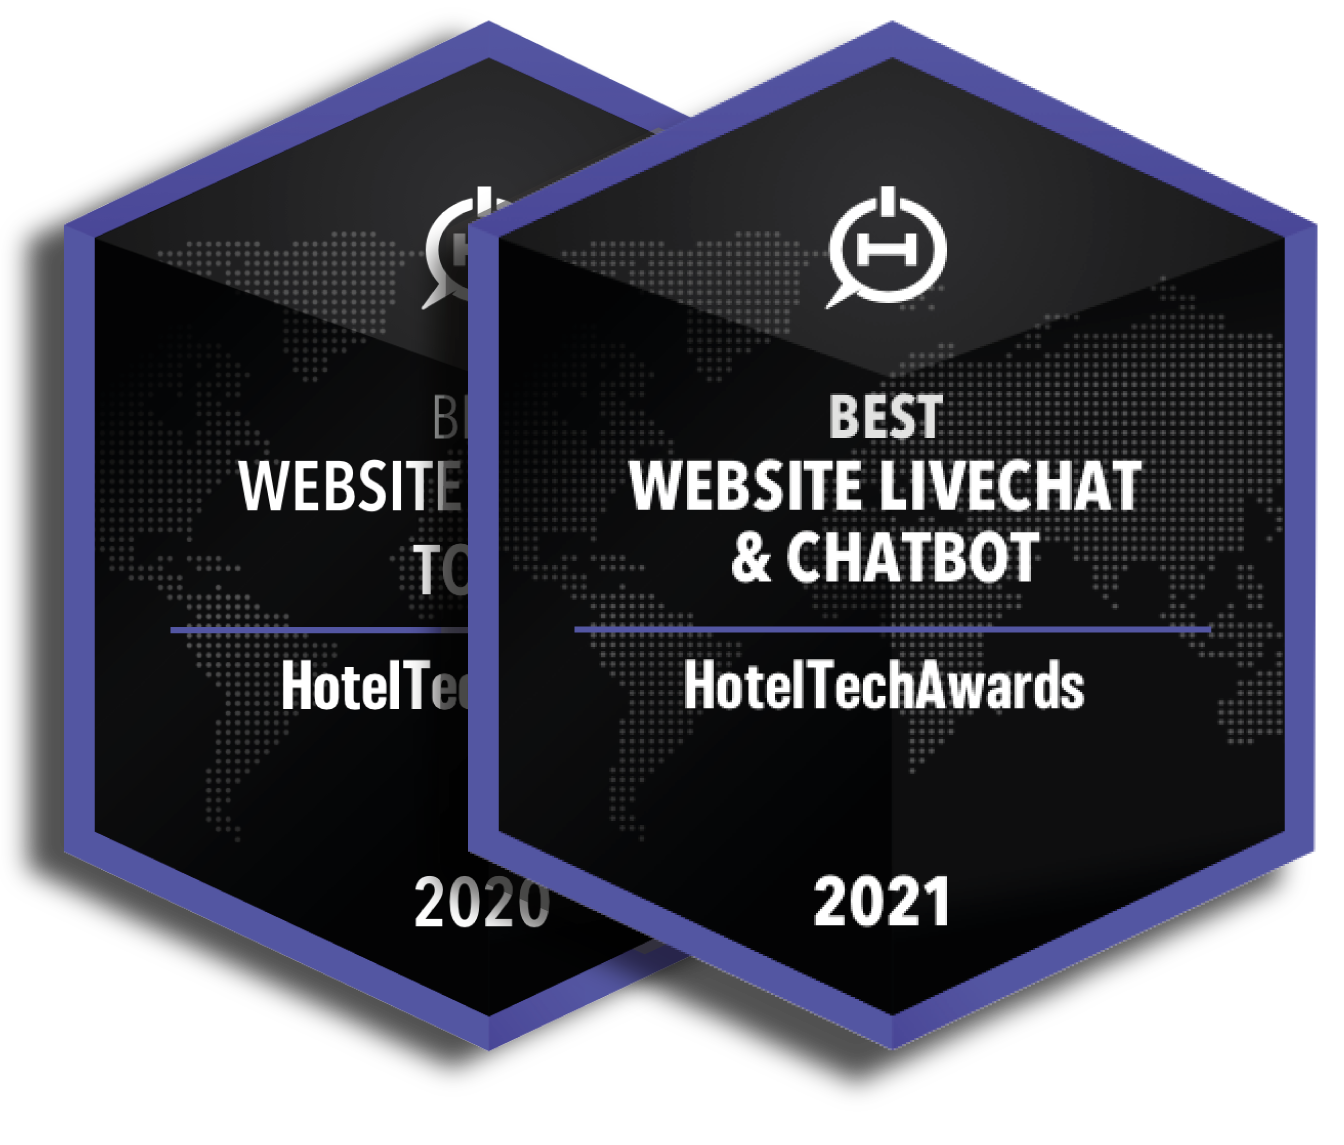 Best Livechat & Chatbot for hotels - HotelTechAwards